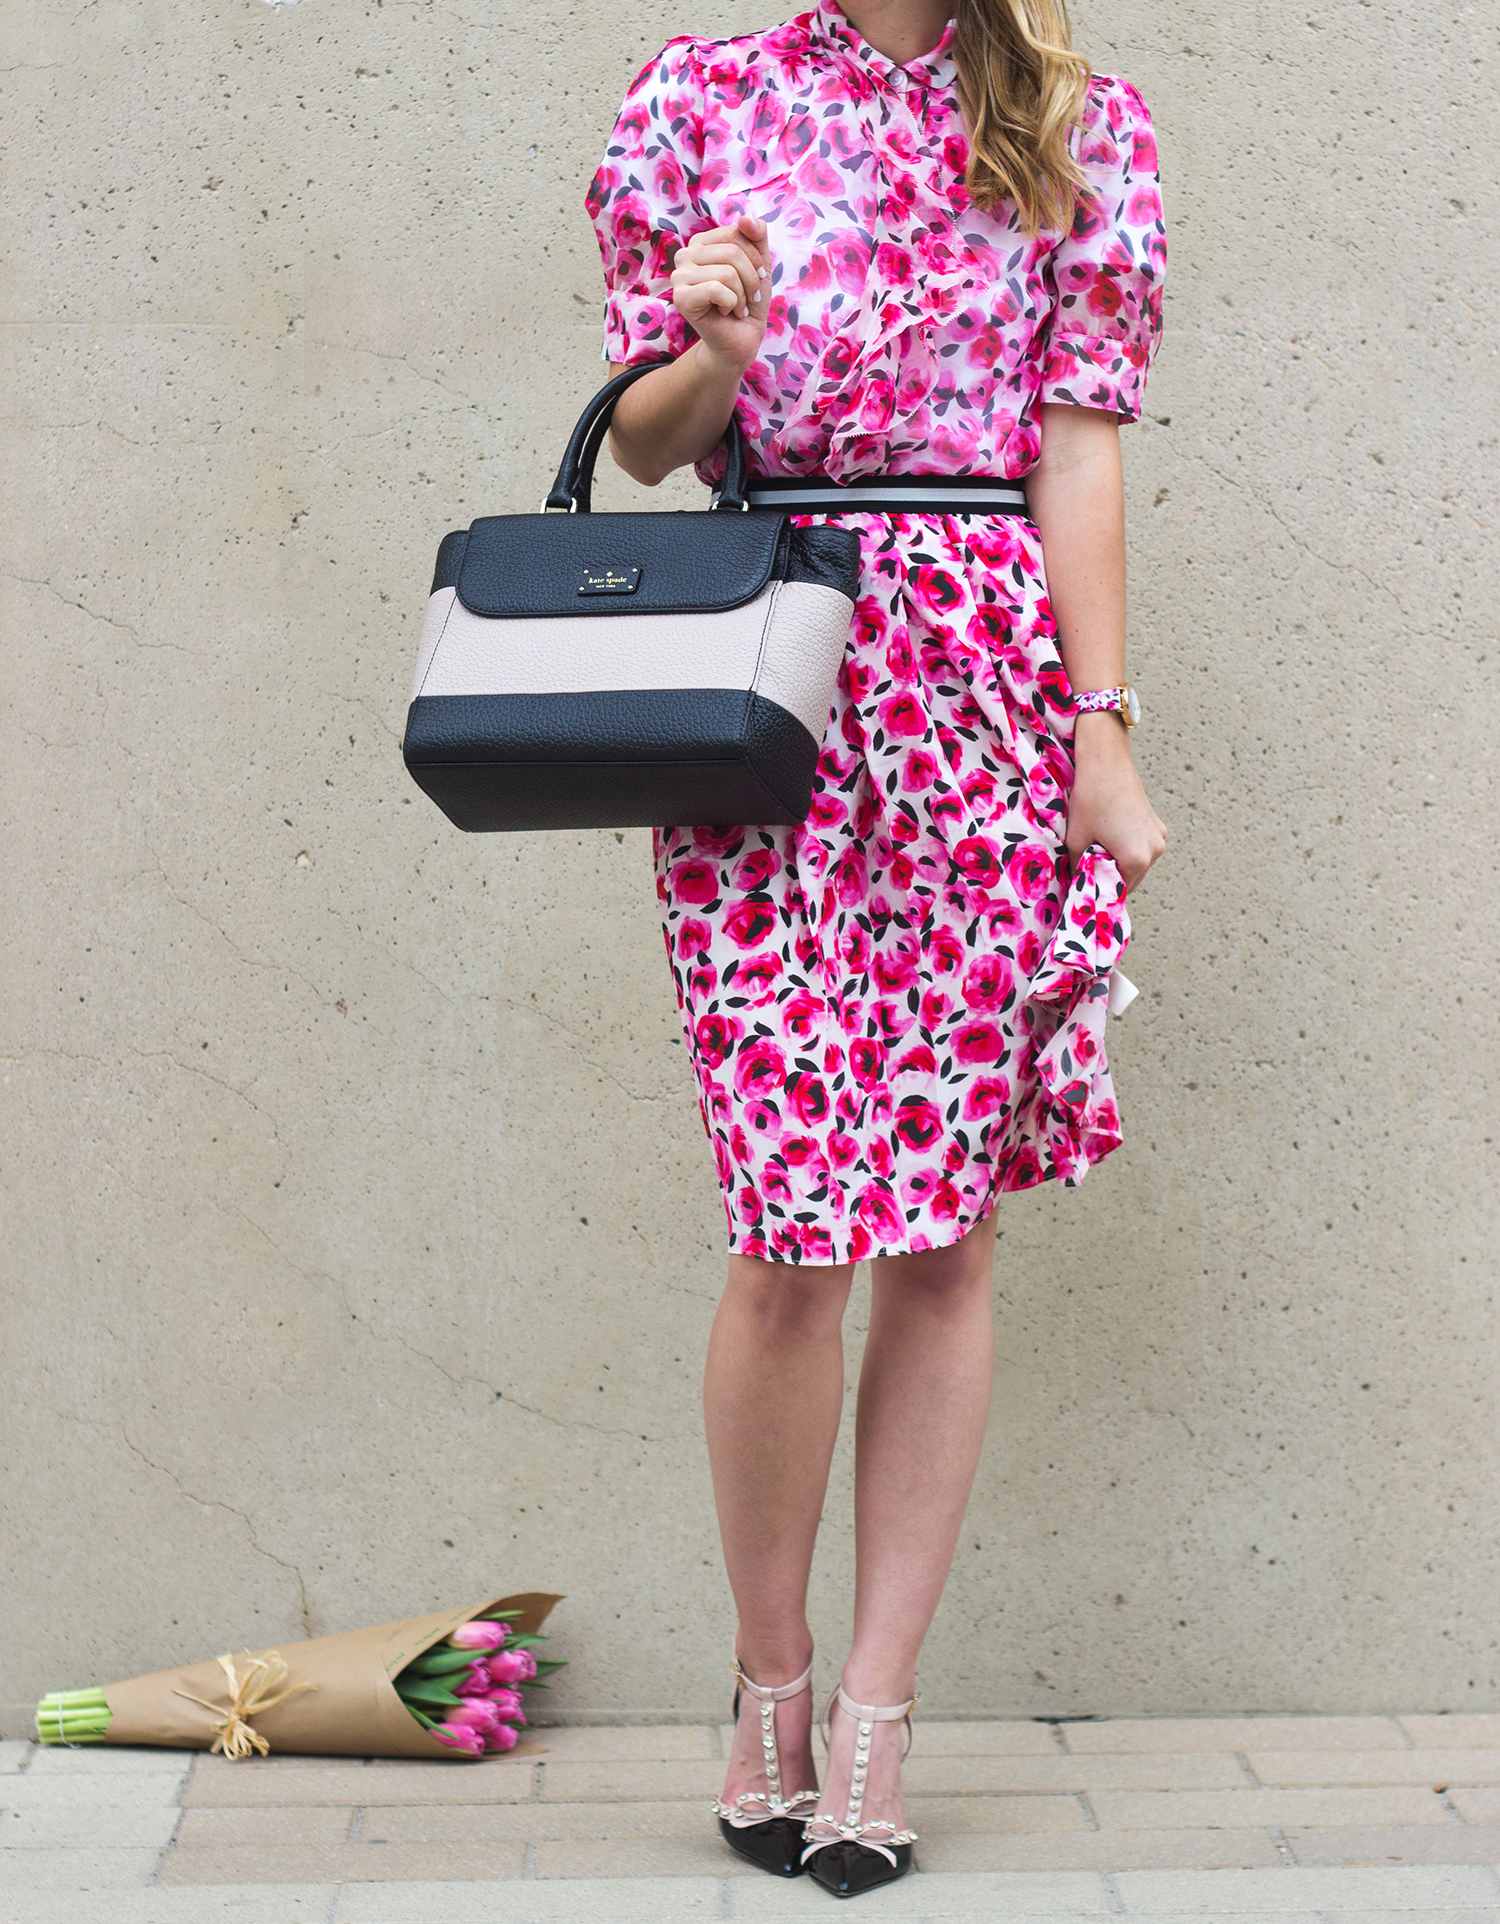 livvyland-blog-olivia-watson-austin-texas-fashion-blogger-kate-spade-broome-street-everyday-tee-white-rose-pleated-skirt-pink-black-spring-outfit-12